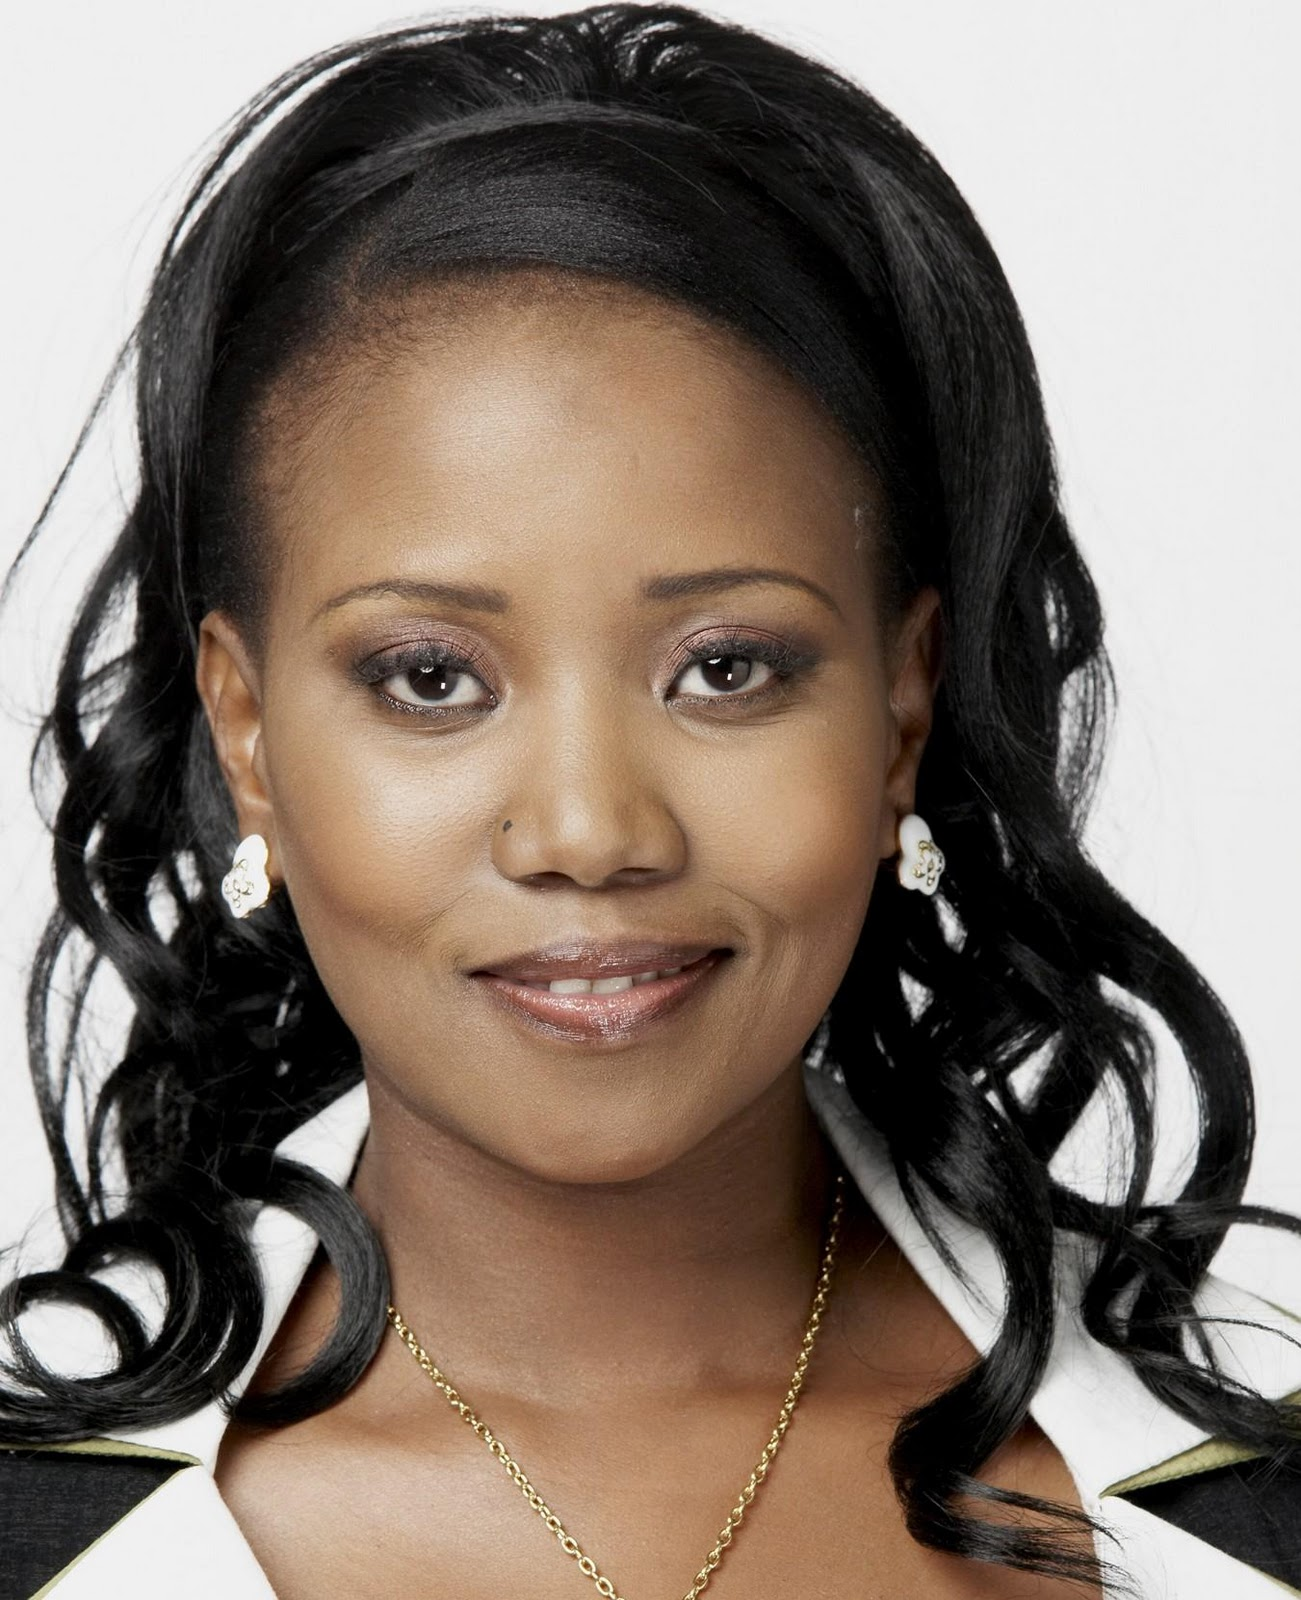 Actress Lesego Motsepe Reveals That She Is HIV